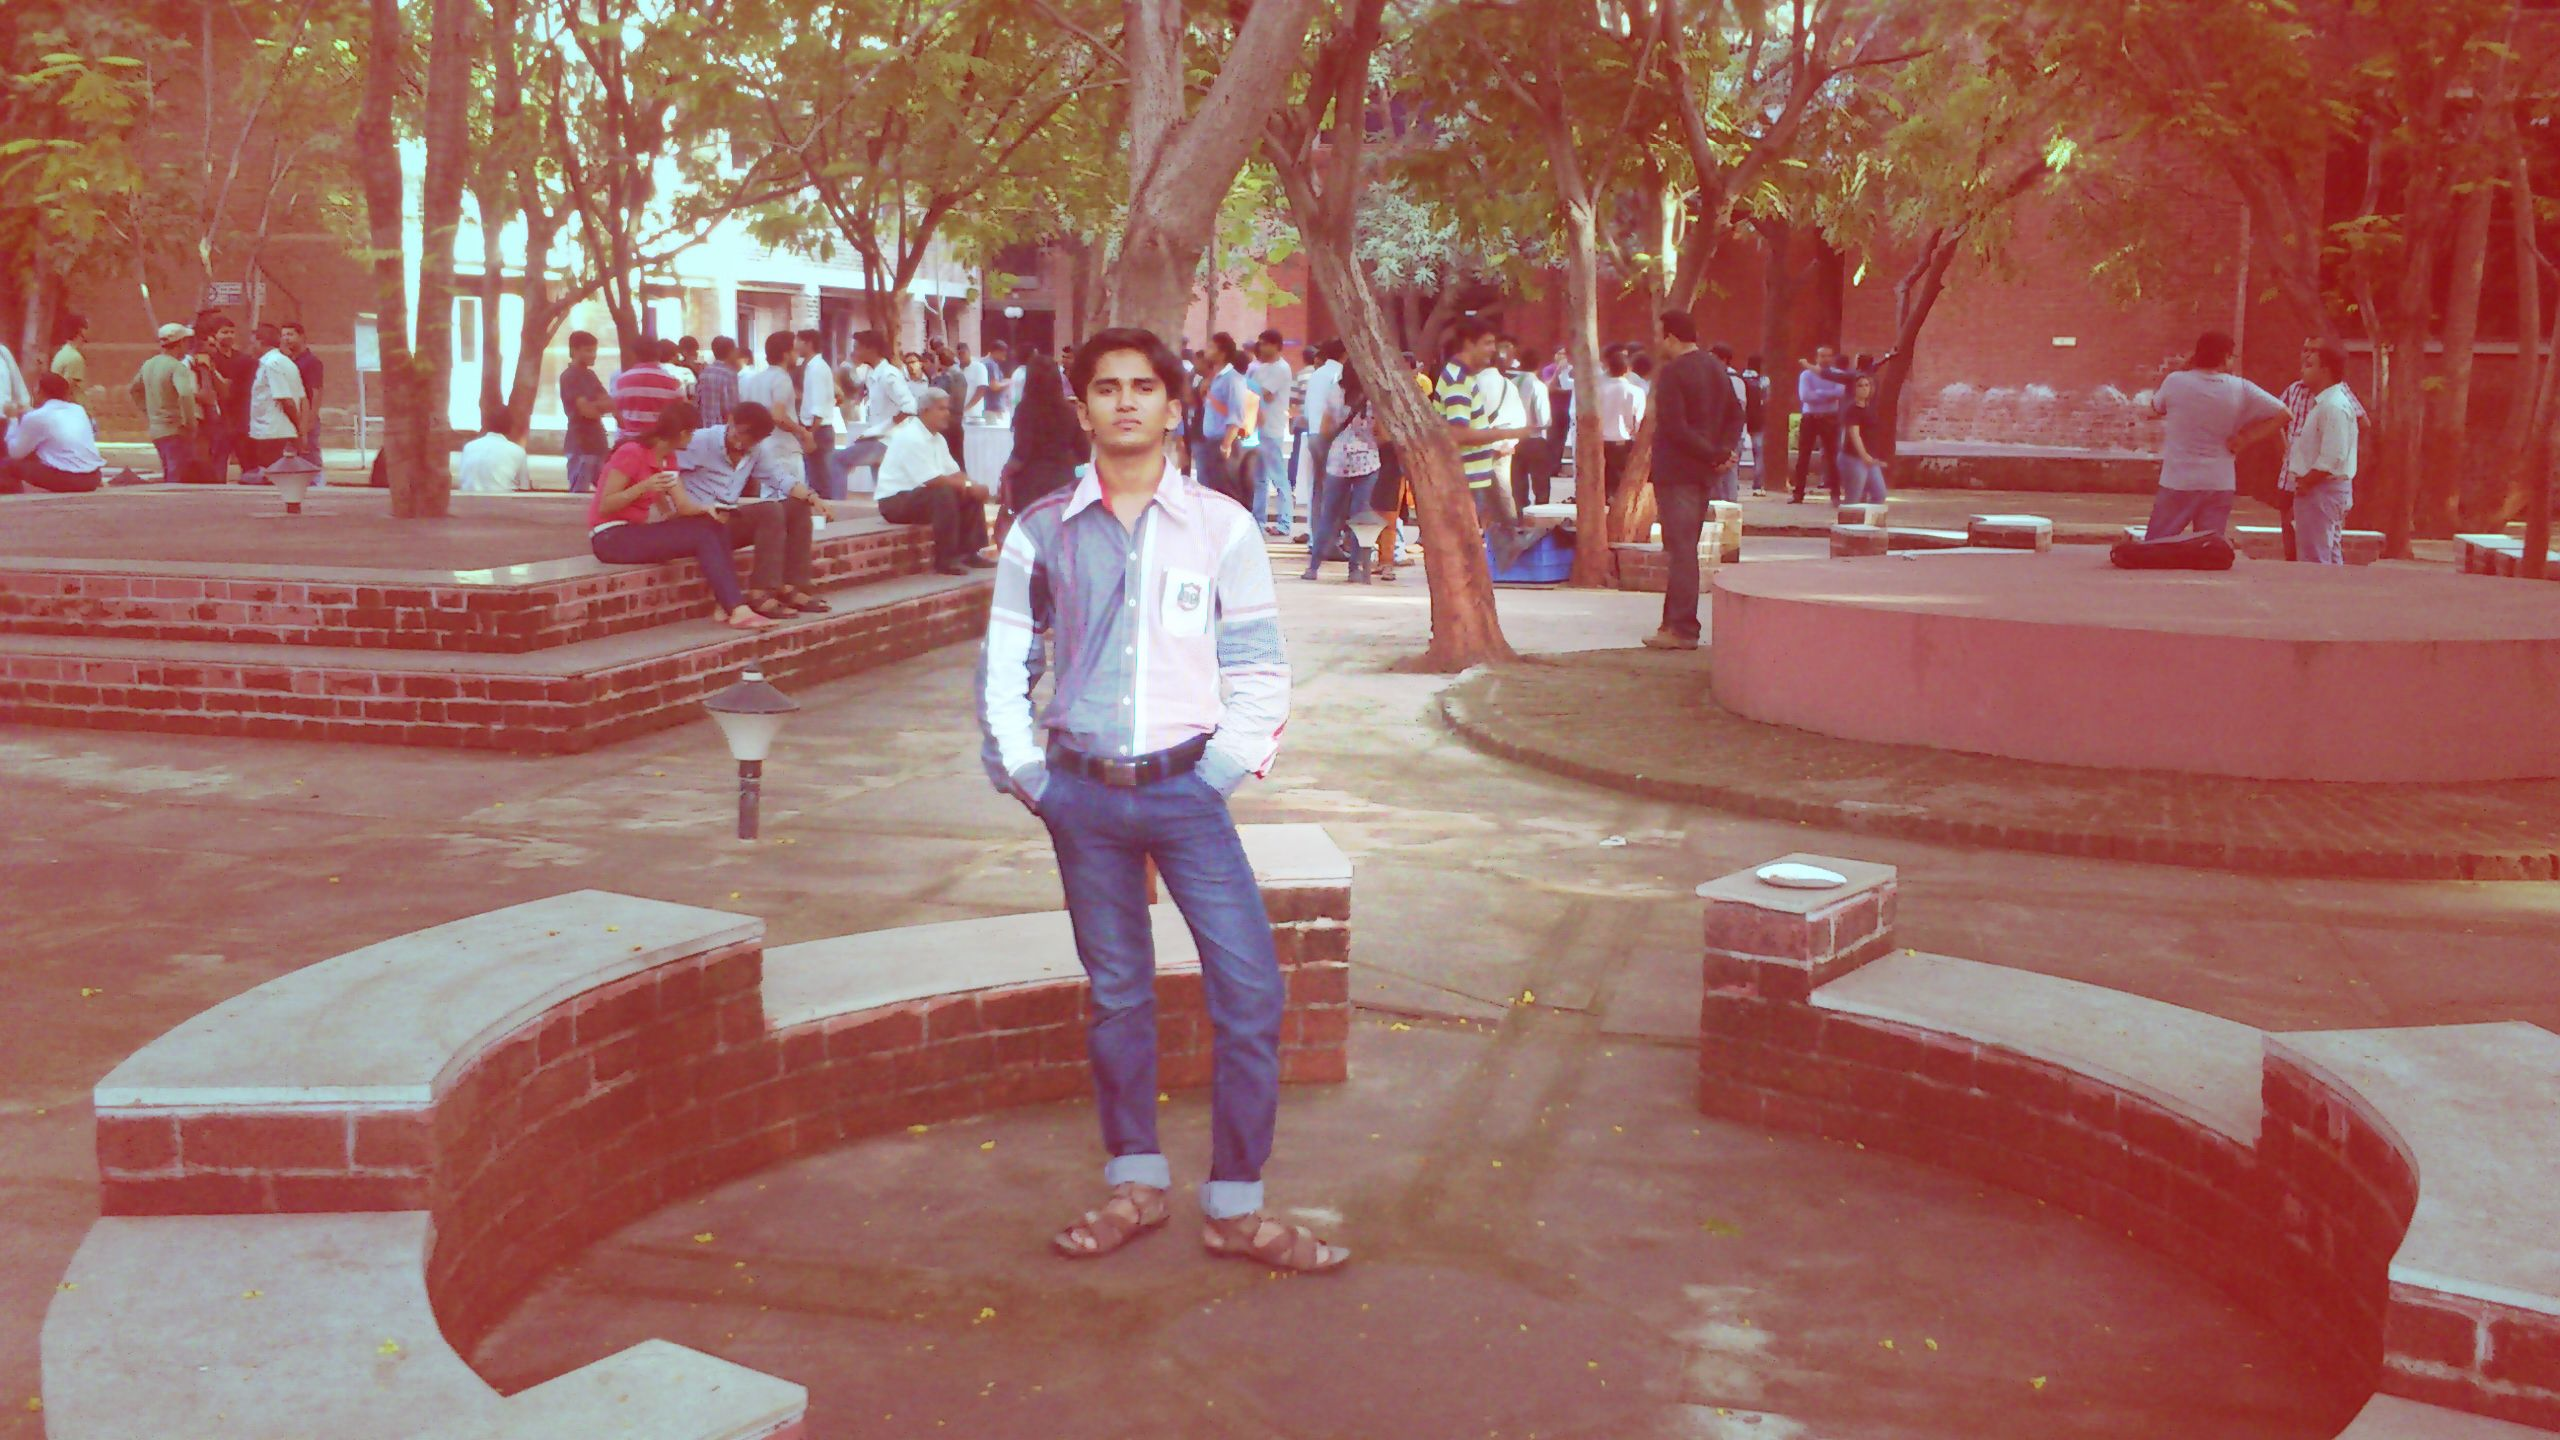 IIM in Ahmedabad (With images) Development, Basketball